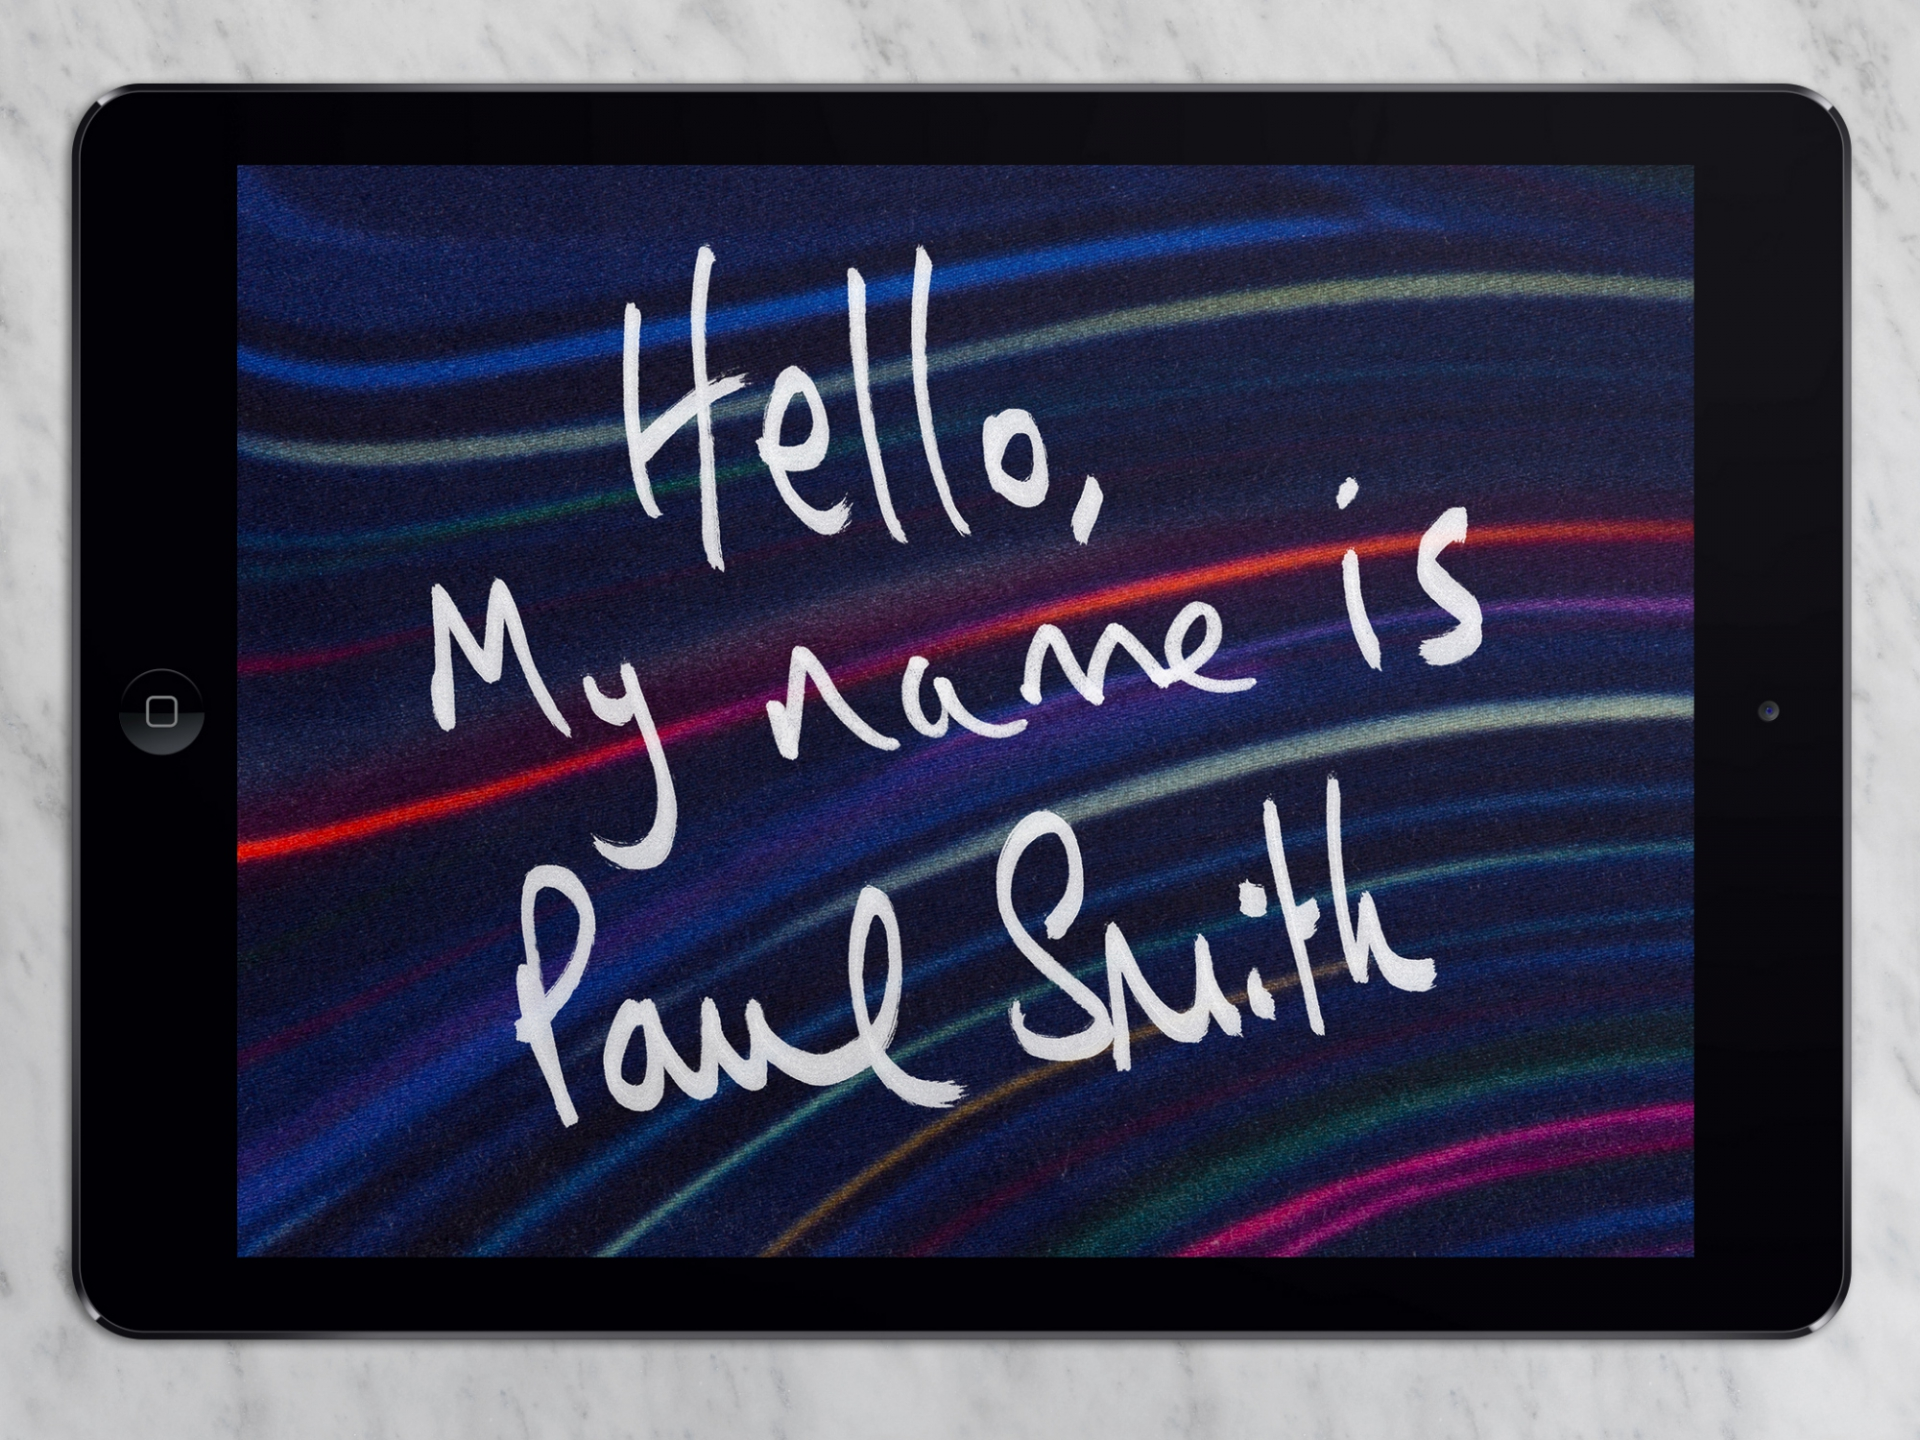 Patrick Fry Paul Smith iPad App